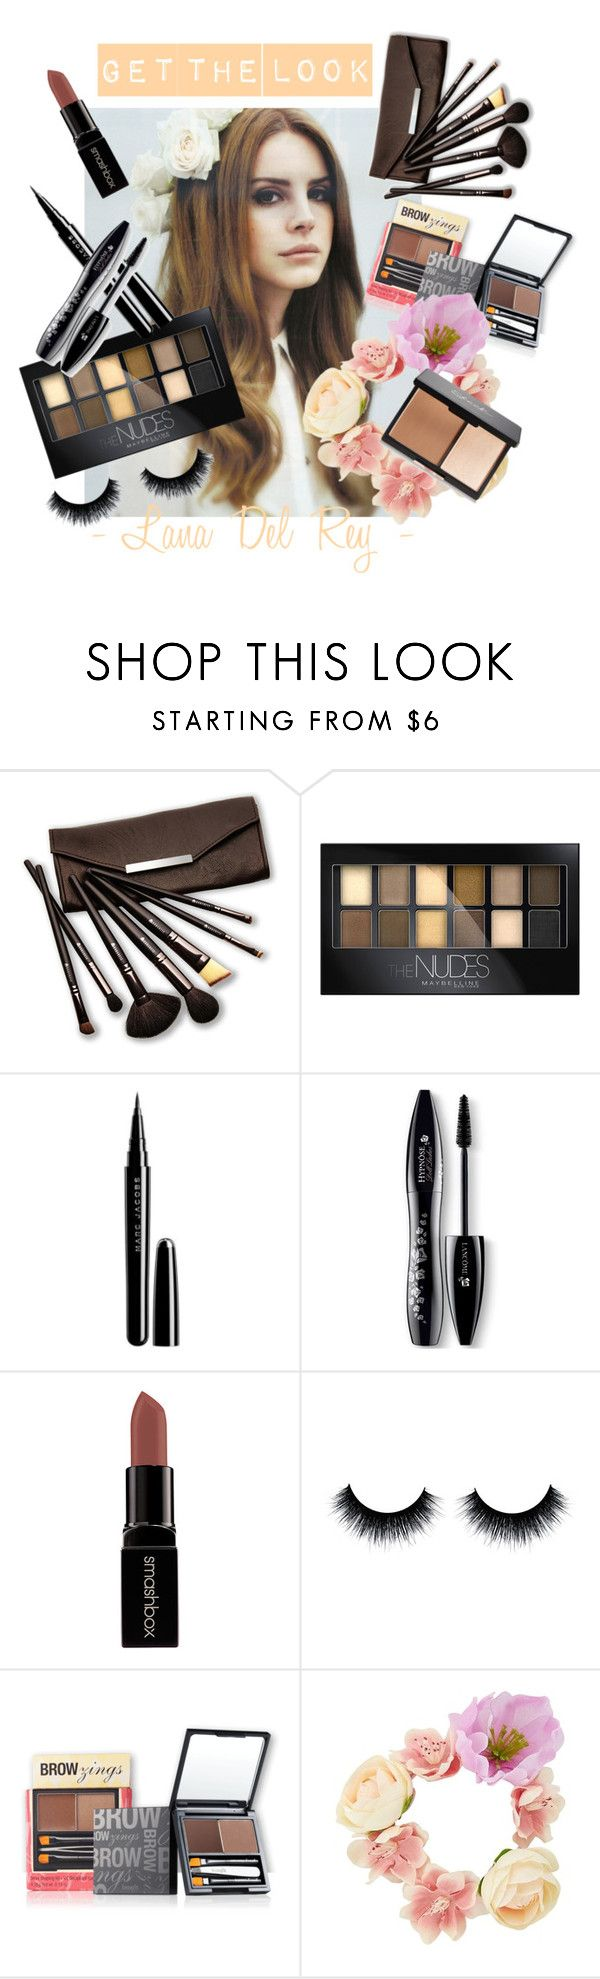 """Get The Look - Lana Del Rey"" by stylebycharlene on Polyvore featuring beauty, Borghese, Maybelline, Marc Jacobs, Lancôme and Smashbox"